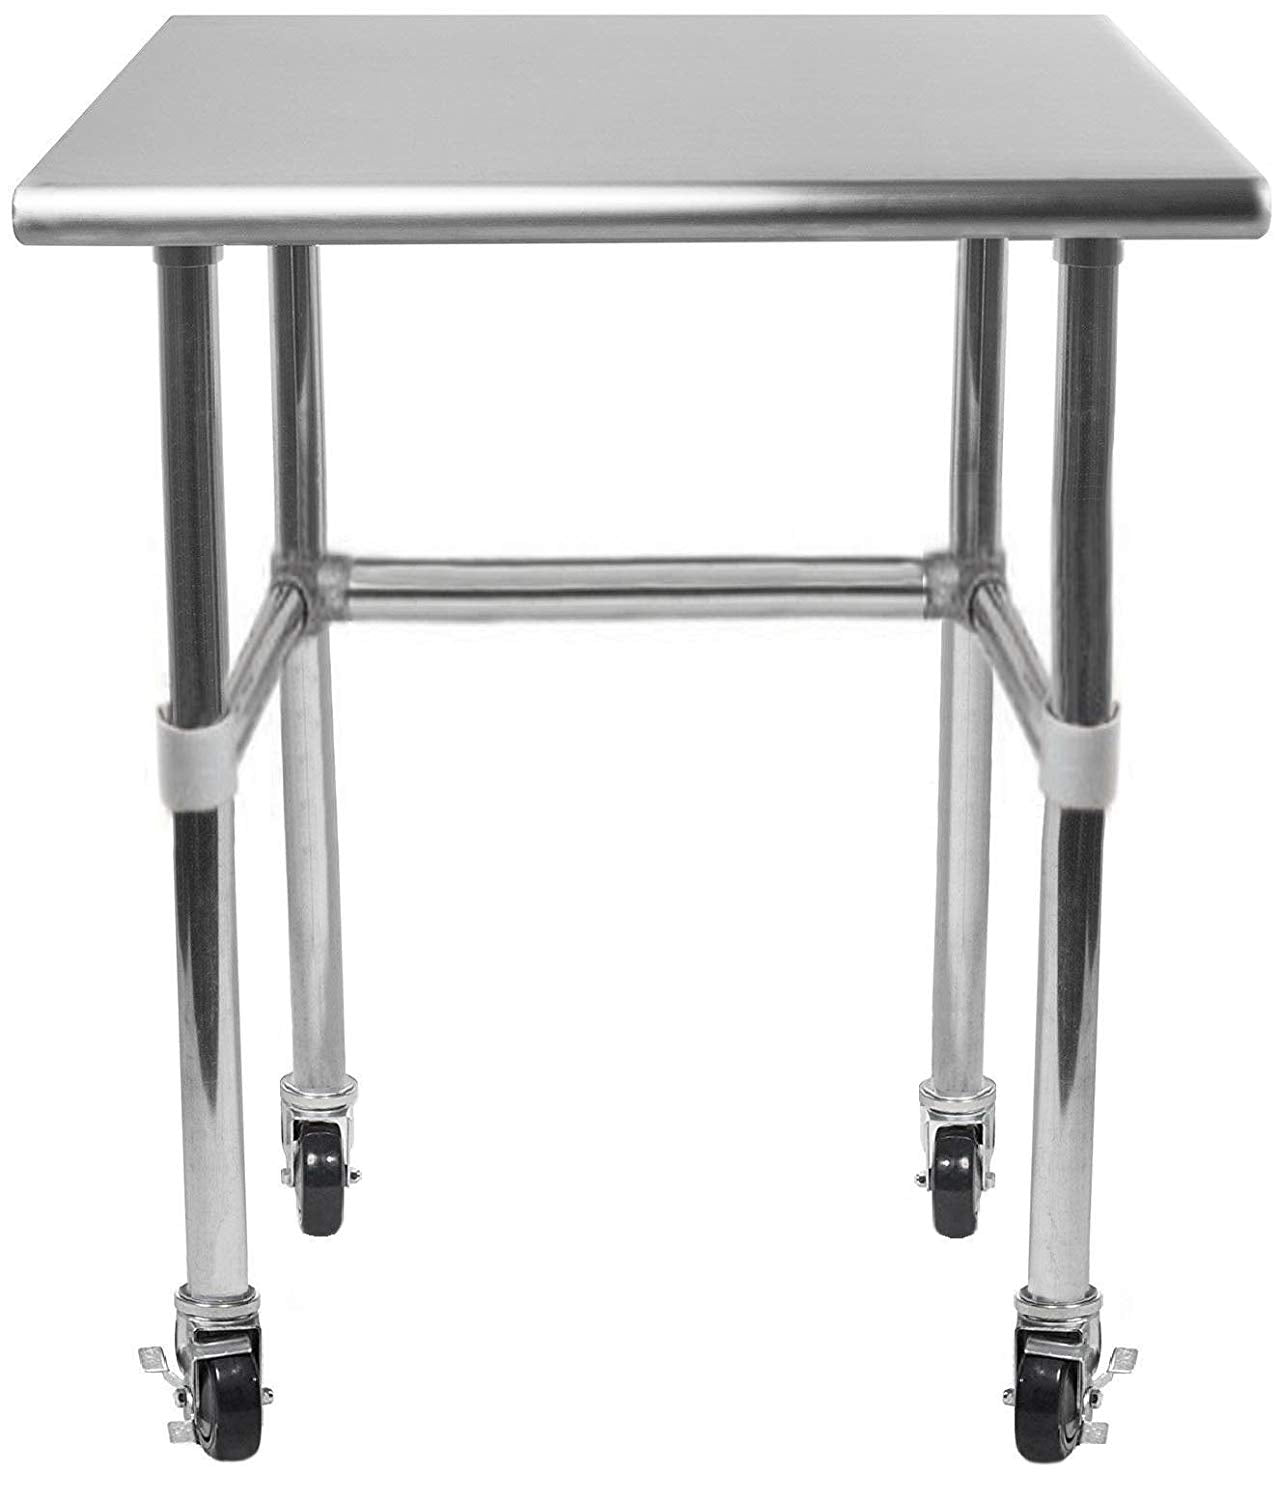 "14"" X 24"" Stainless Steel Work Table With Open Base & Casters - AmGoodSupply.com"